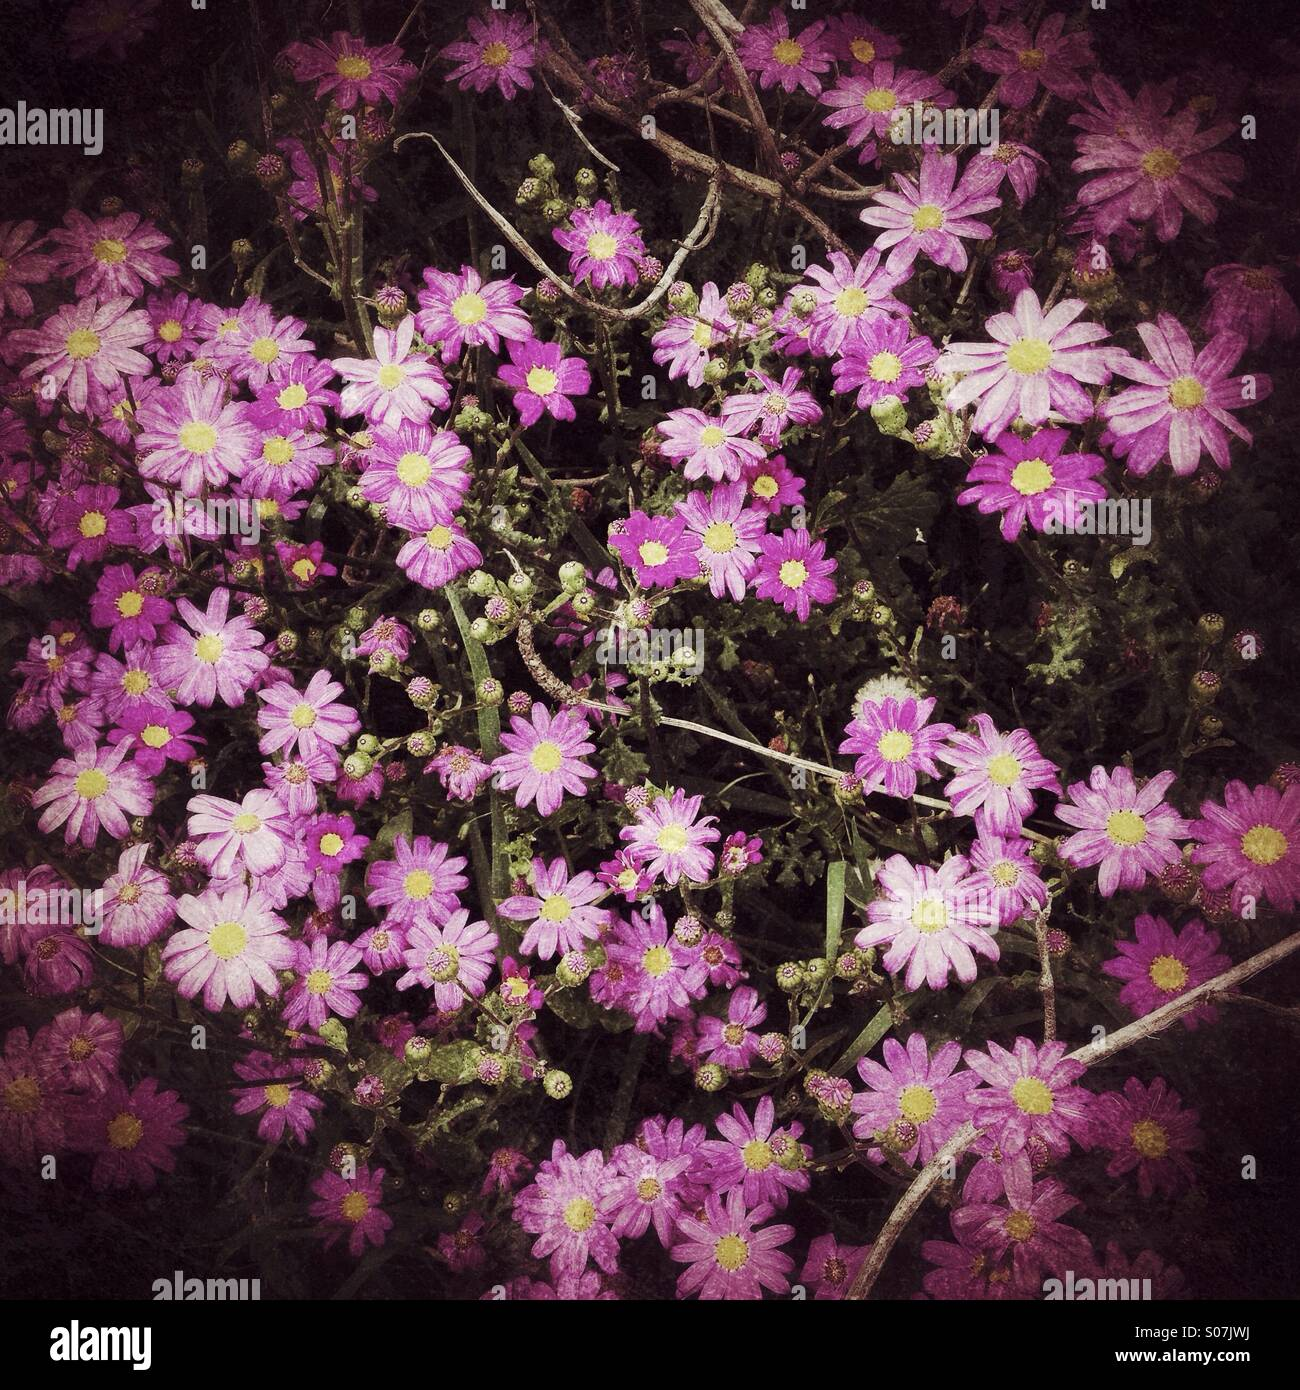 Flowers in darkness - Stock Image